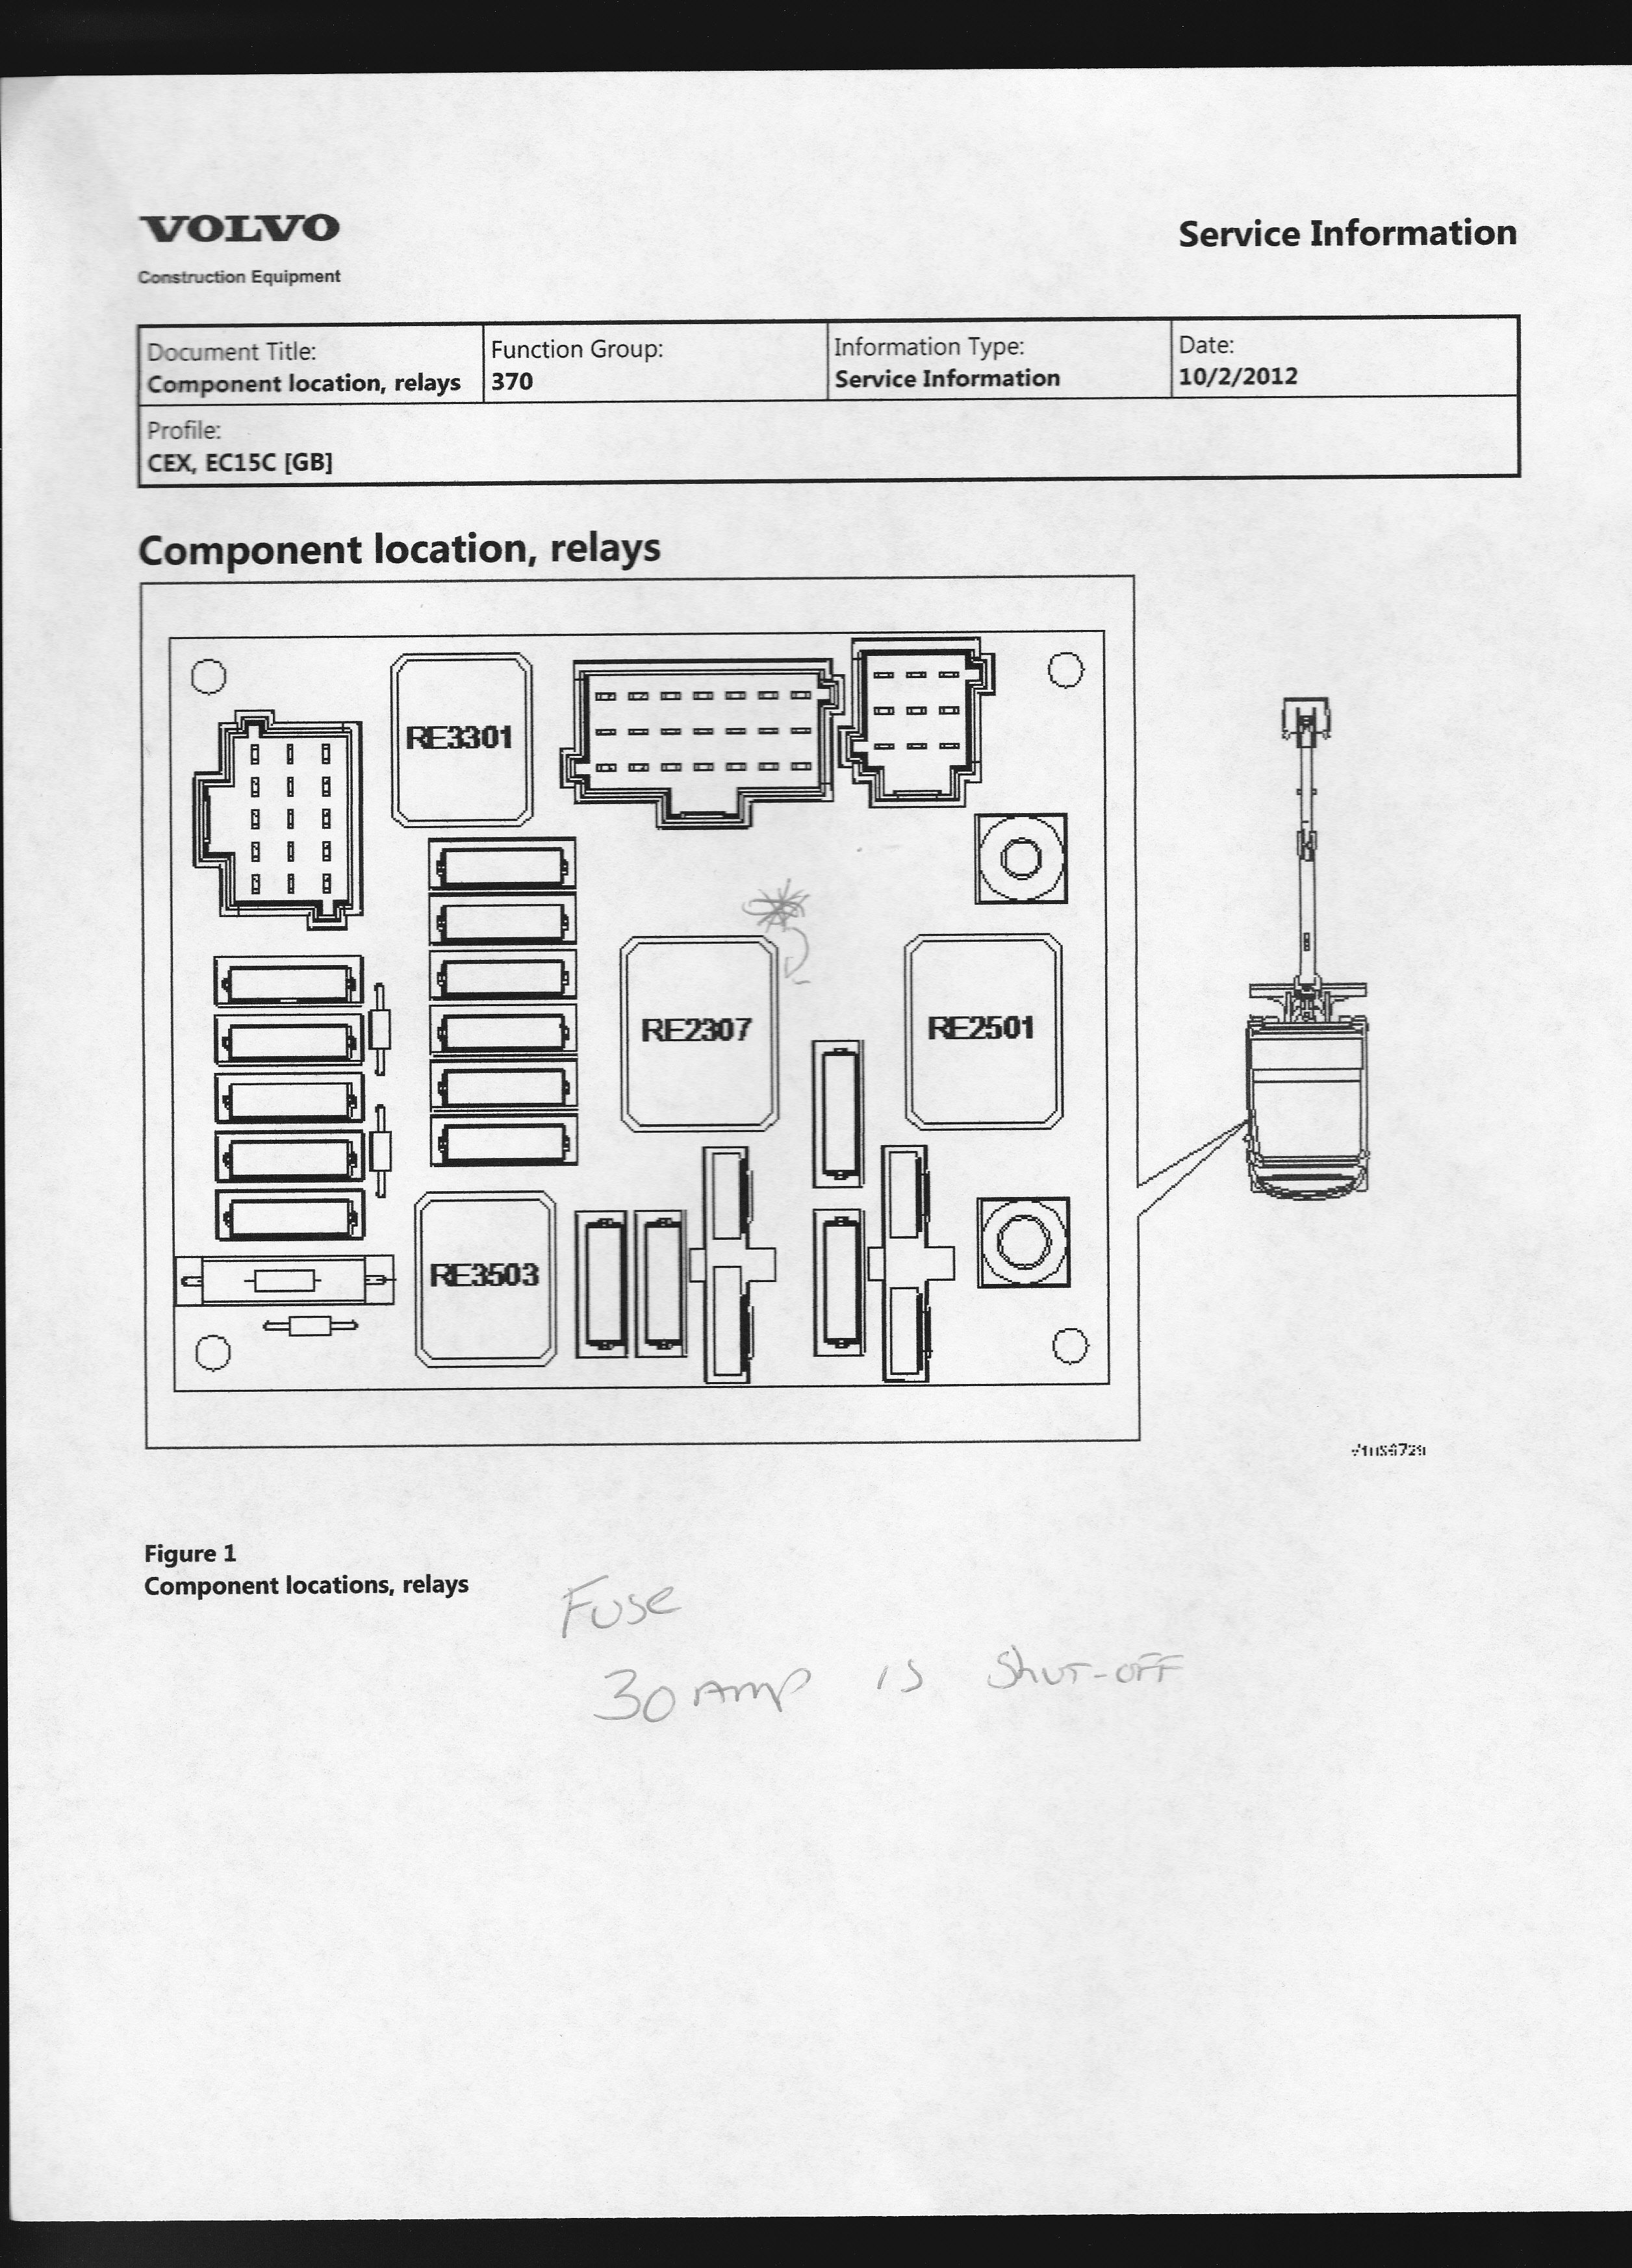 DIAGRAM] Volvo Ec15b Wiring Diagram FULL Version HD Quality Wiring Diagram  - LADDERDIAGRAM.ITALIARESIDENCE.IT | Volvo Ec15b Wiring Diagram |  | Diagram Database